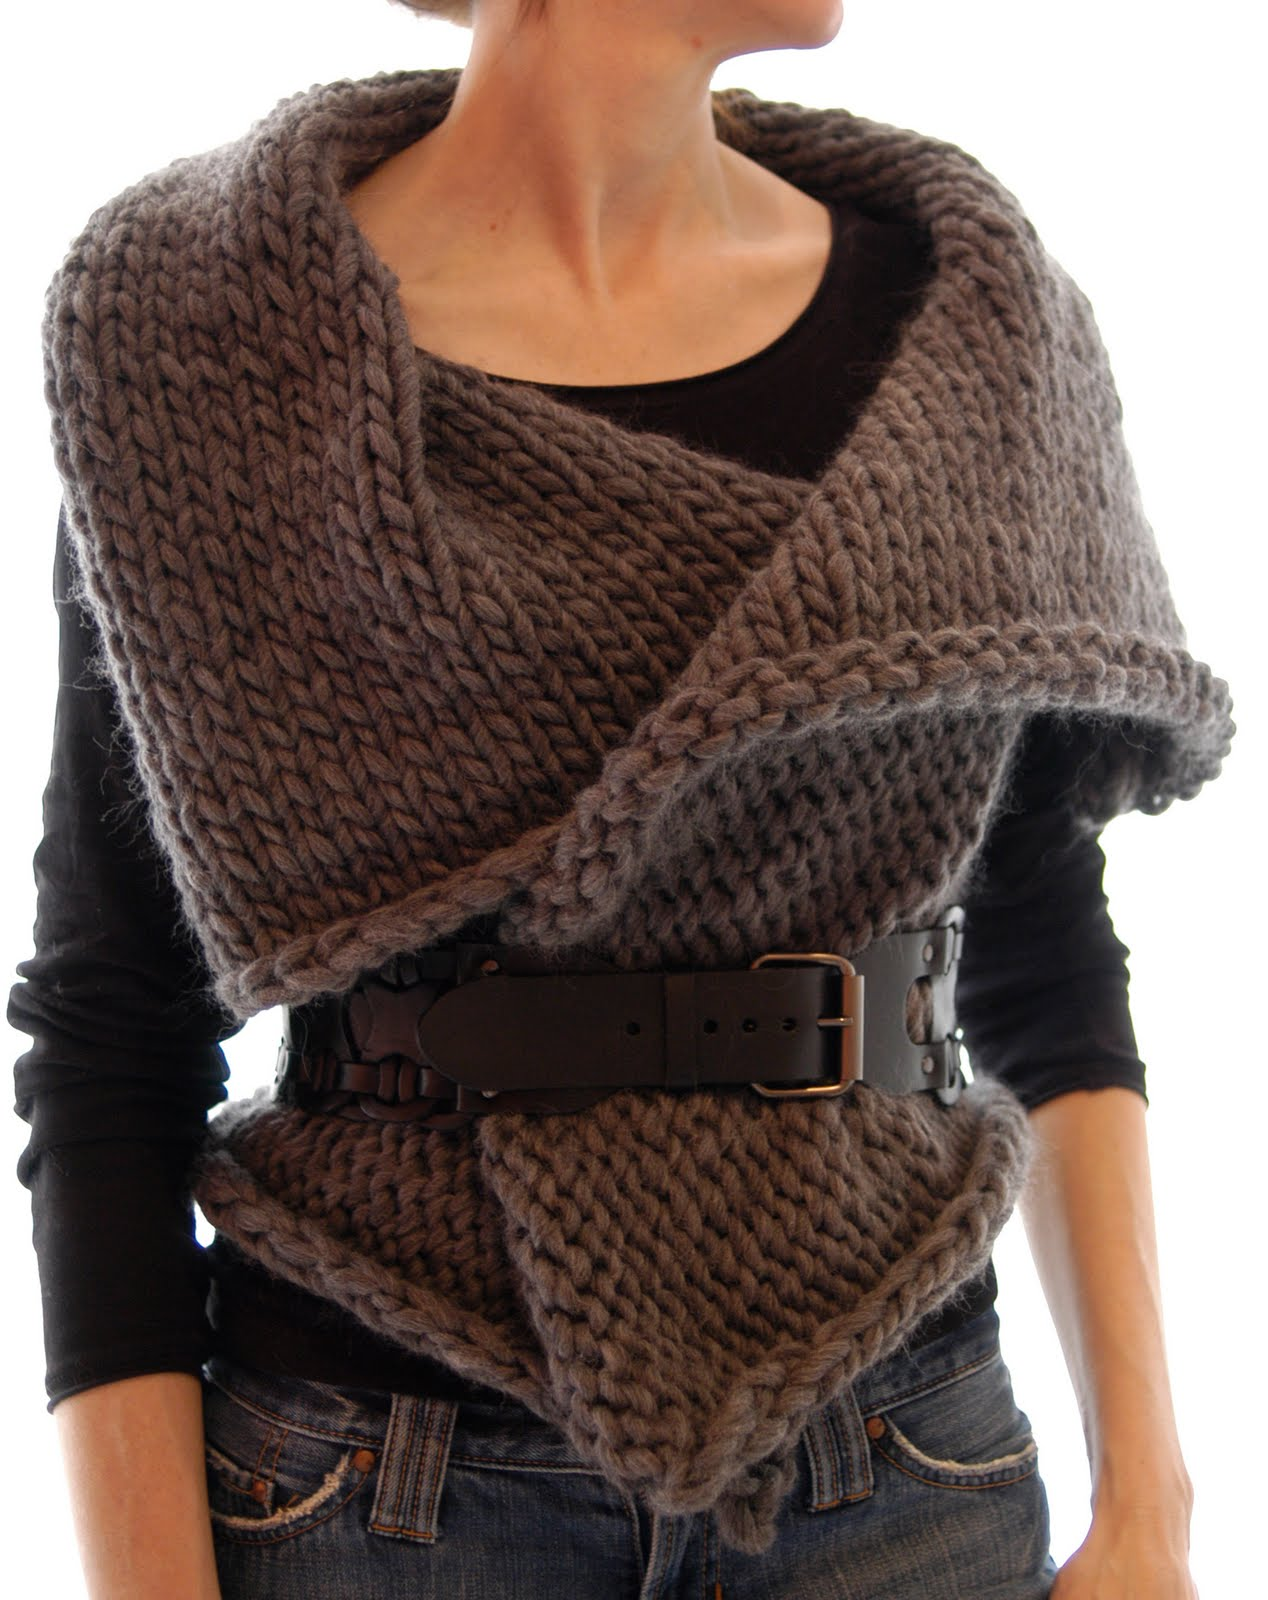 Knitting Patterns Vests : Knit 1 LA: Magnum Reversible Vest/Wrap